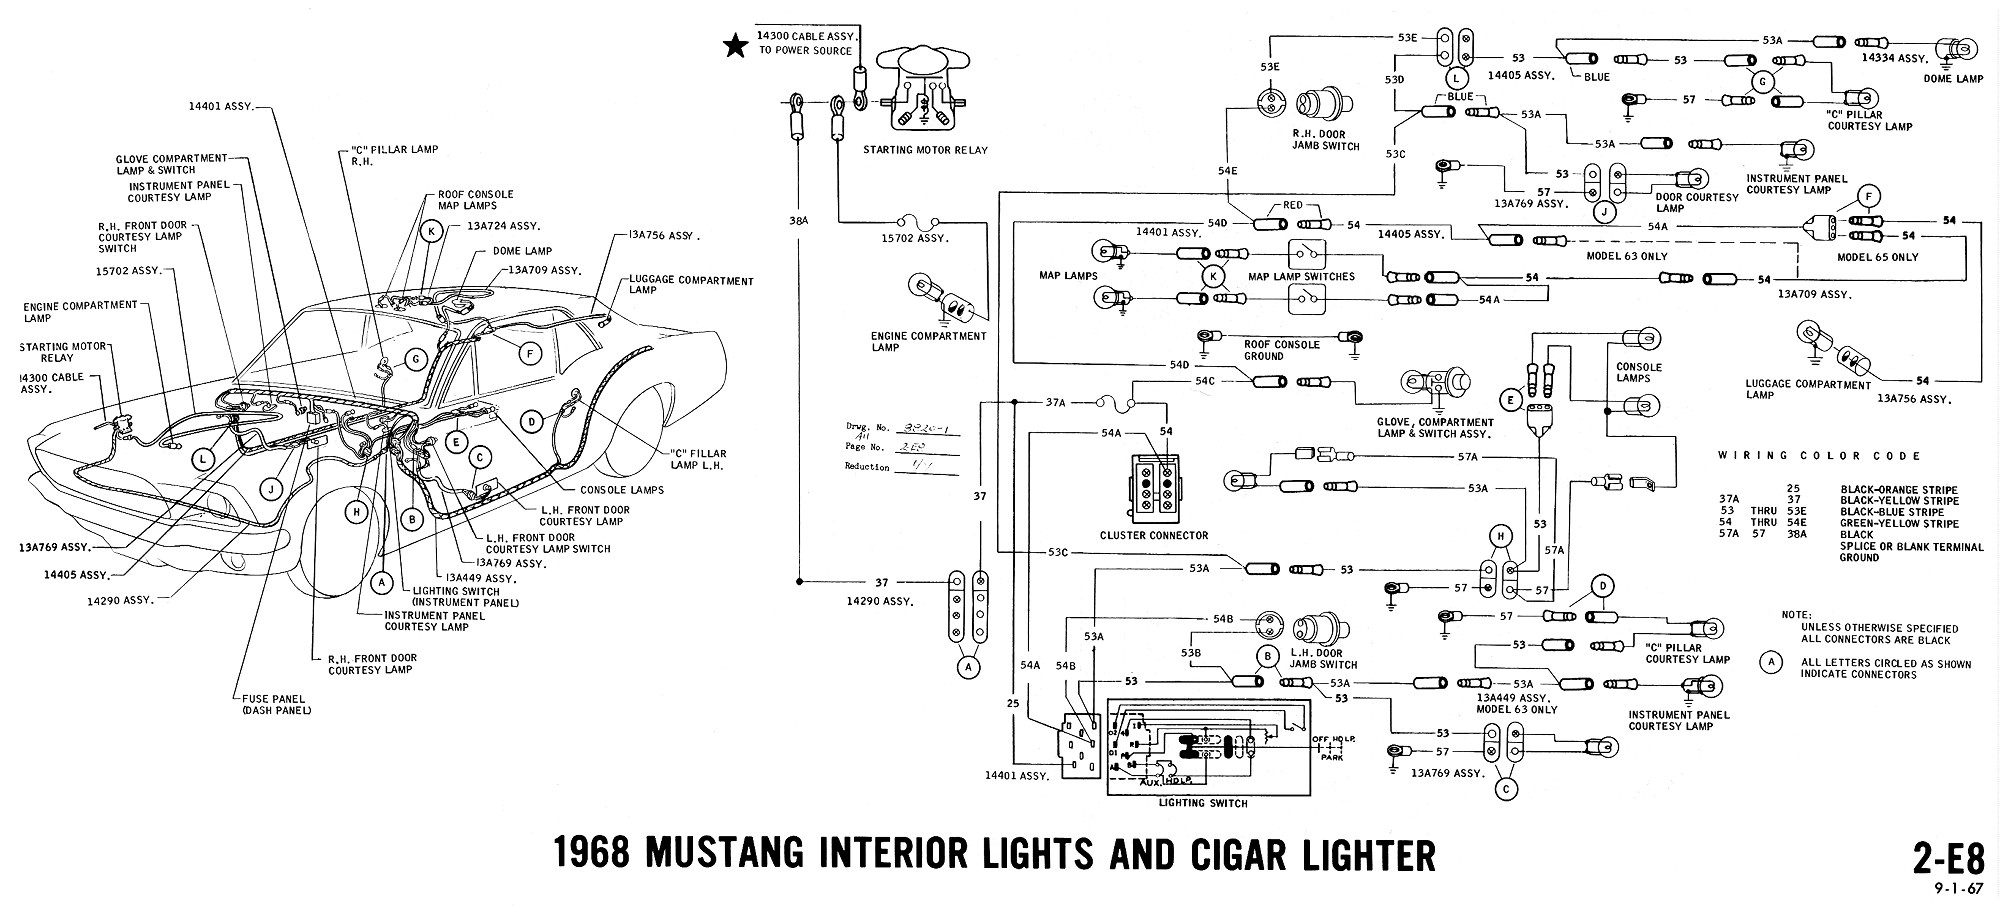 hight resolution of  1968 mustang wiring diagram interior lights cigar lighter sophisticated carrier gas furnace wiring diagram photos wiring